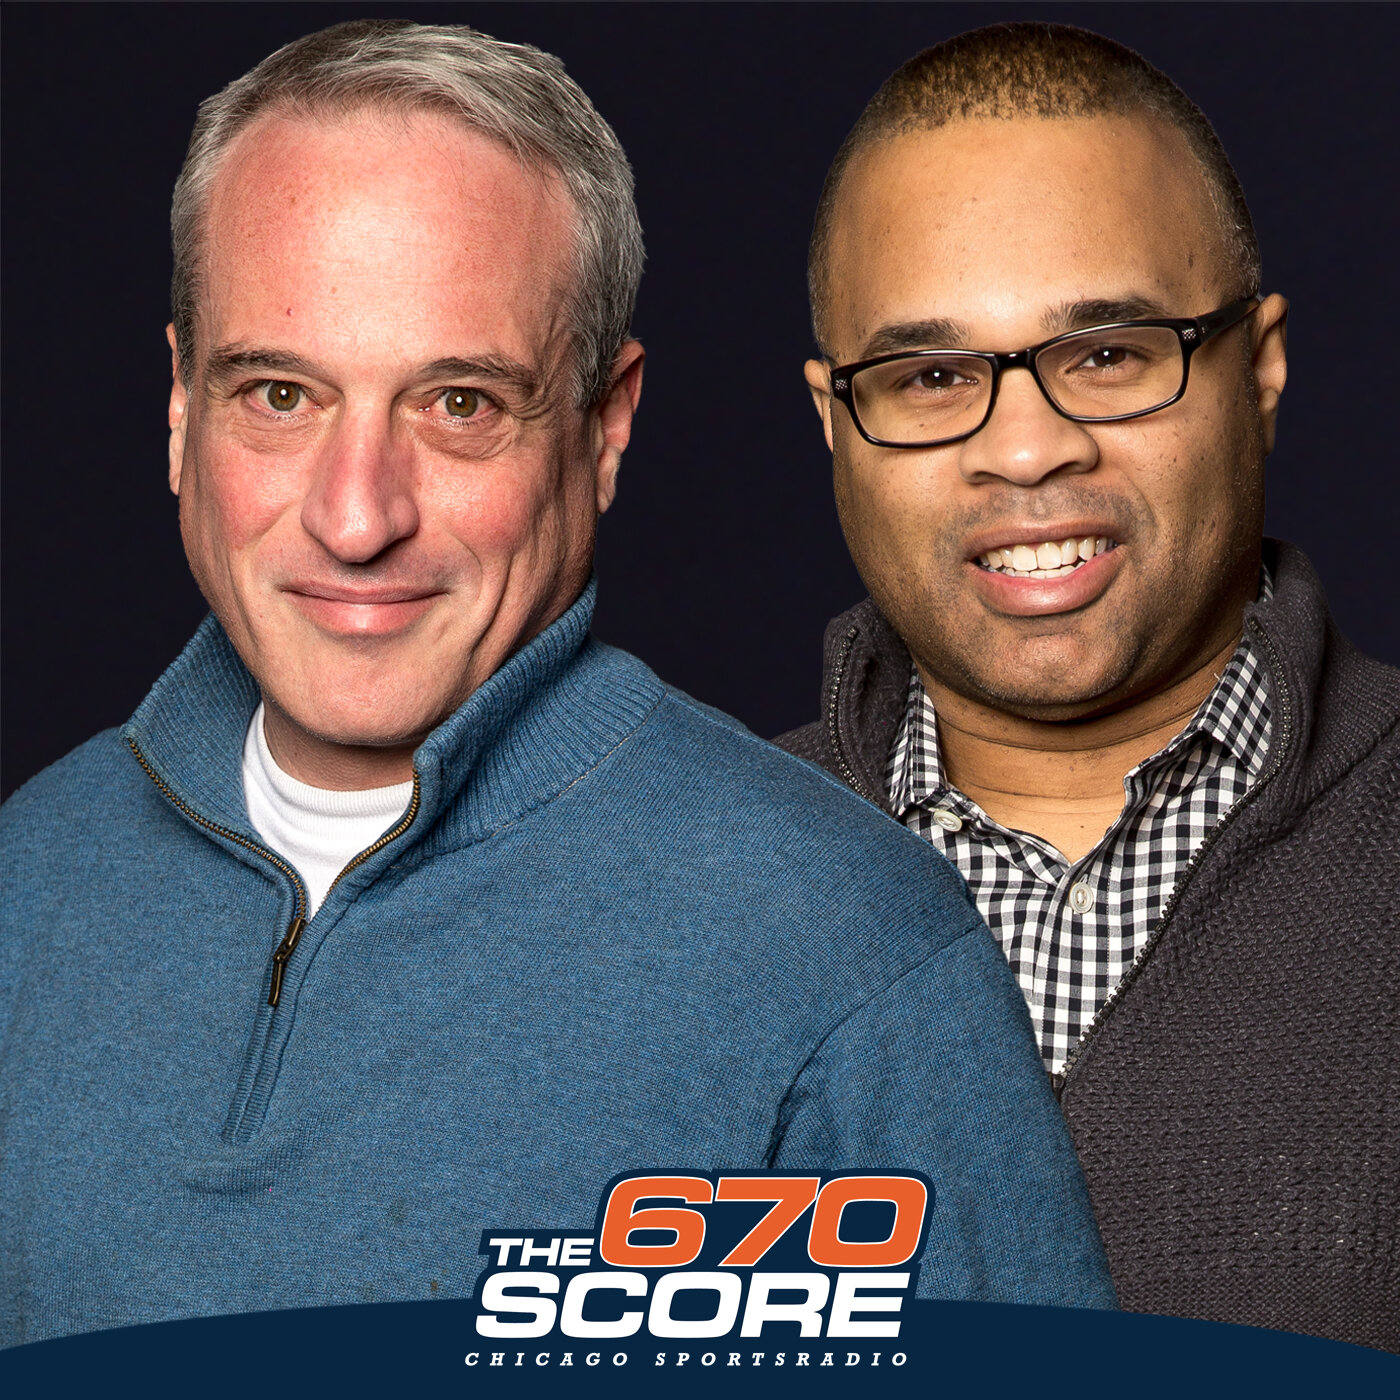 The Spiegel and Parkins Show on 670 The Score